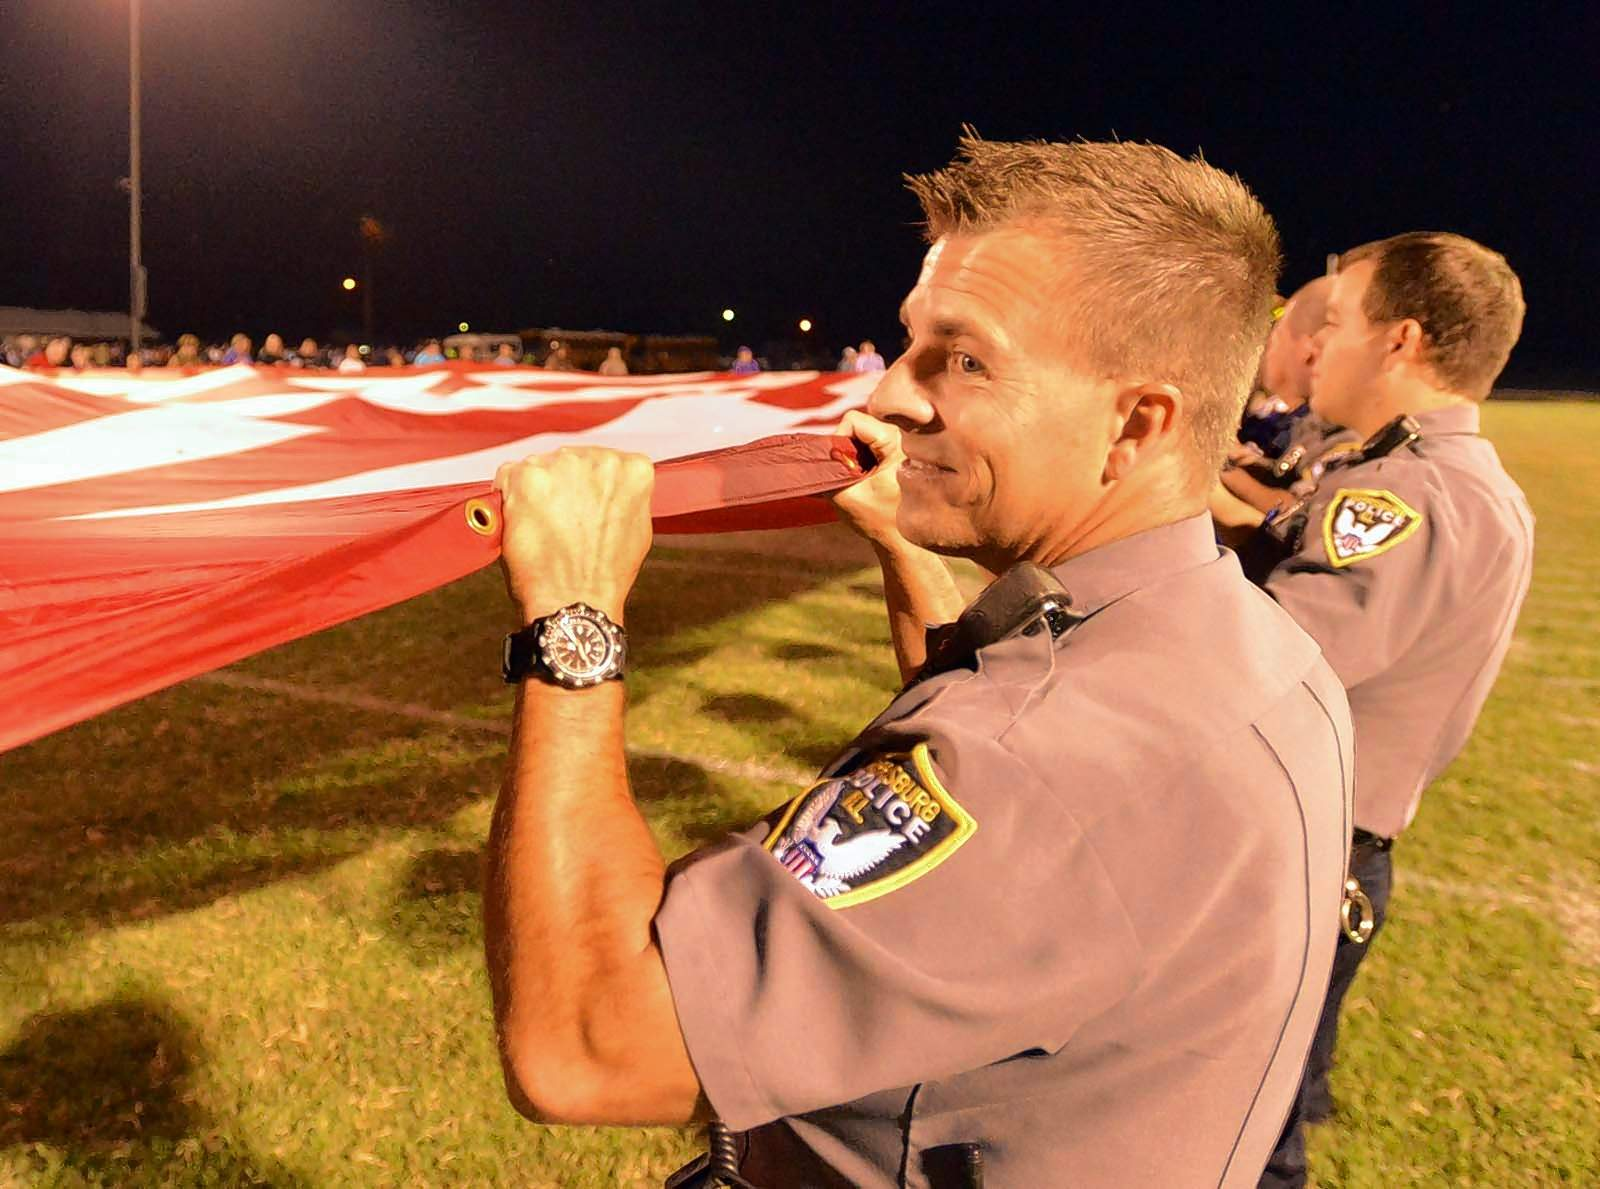 Harrisburg Police officer Brent Davis did his part in holding up the large American flag Friday during halftime festivities at the 9-11 remembrance ceremony at Taylor Field.